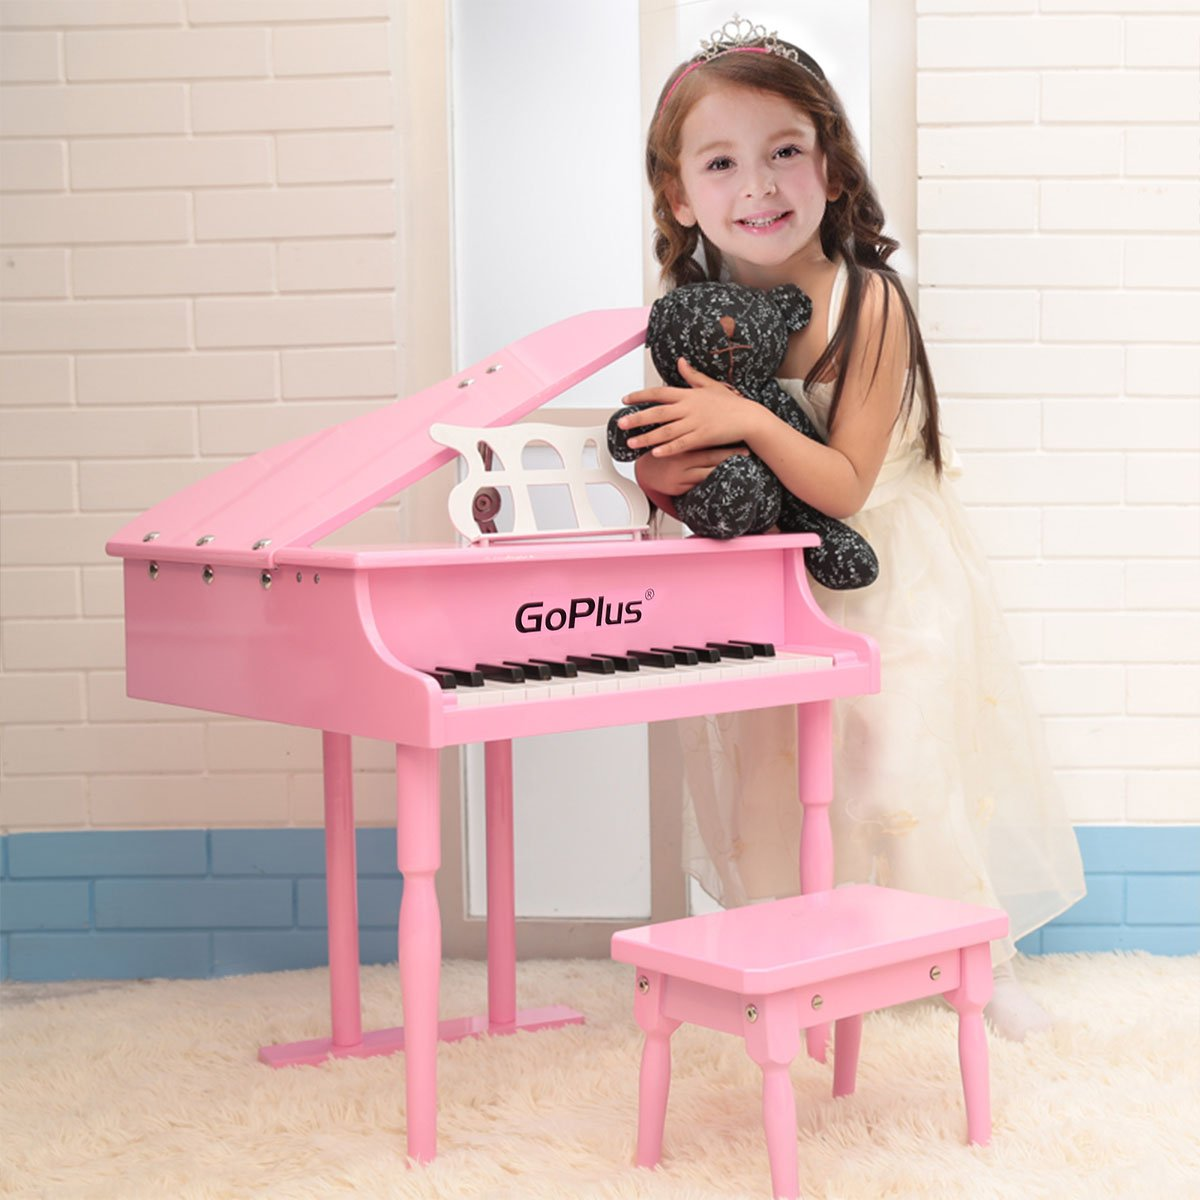 Goplus Wood Toy Grand Piano 30 Keys for Childs with Bench (Black) Superbuy